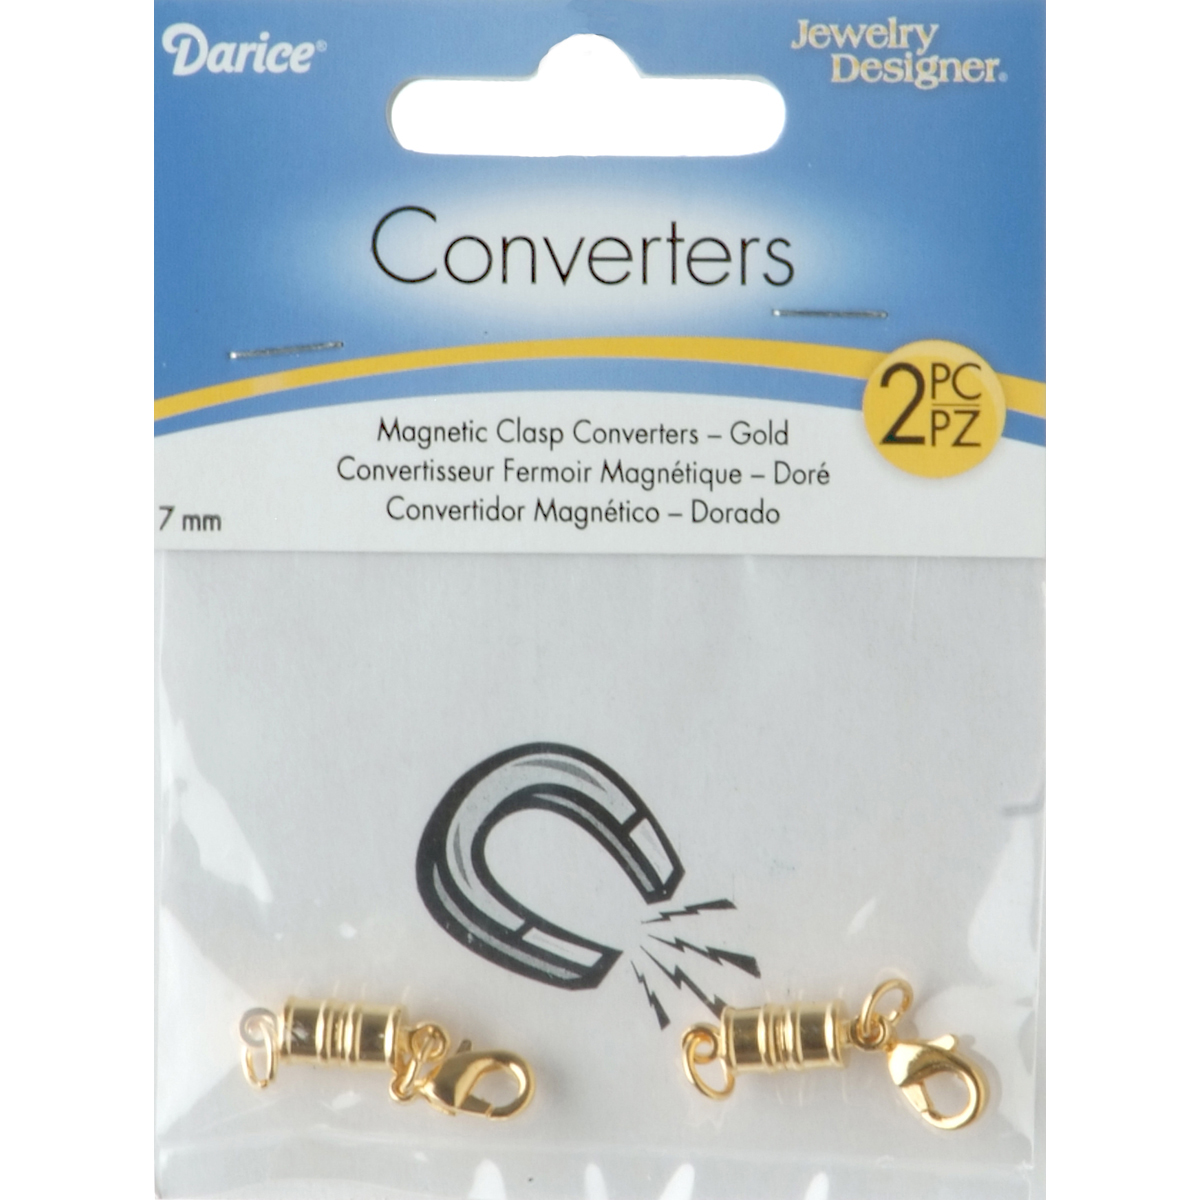 Darice Magnetic Clasp Converter 7 mm Gold